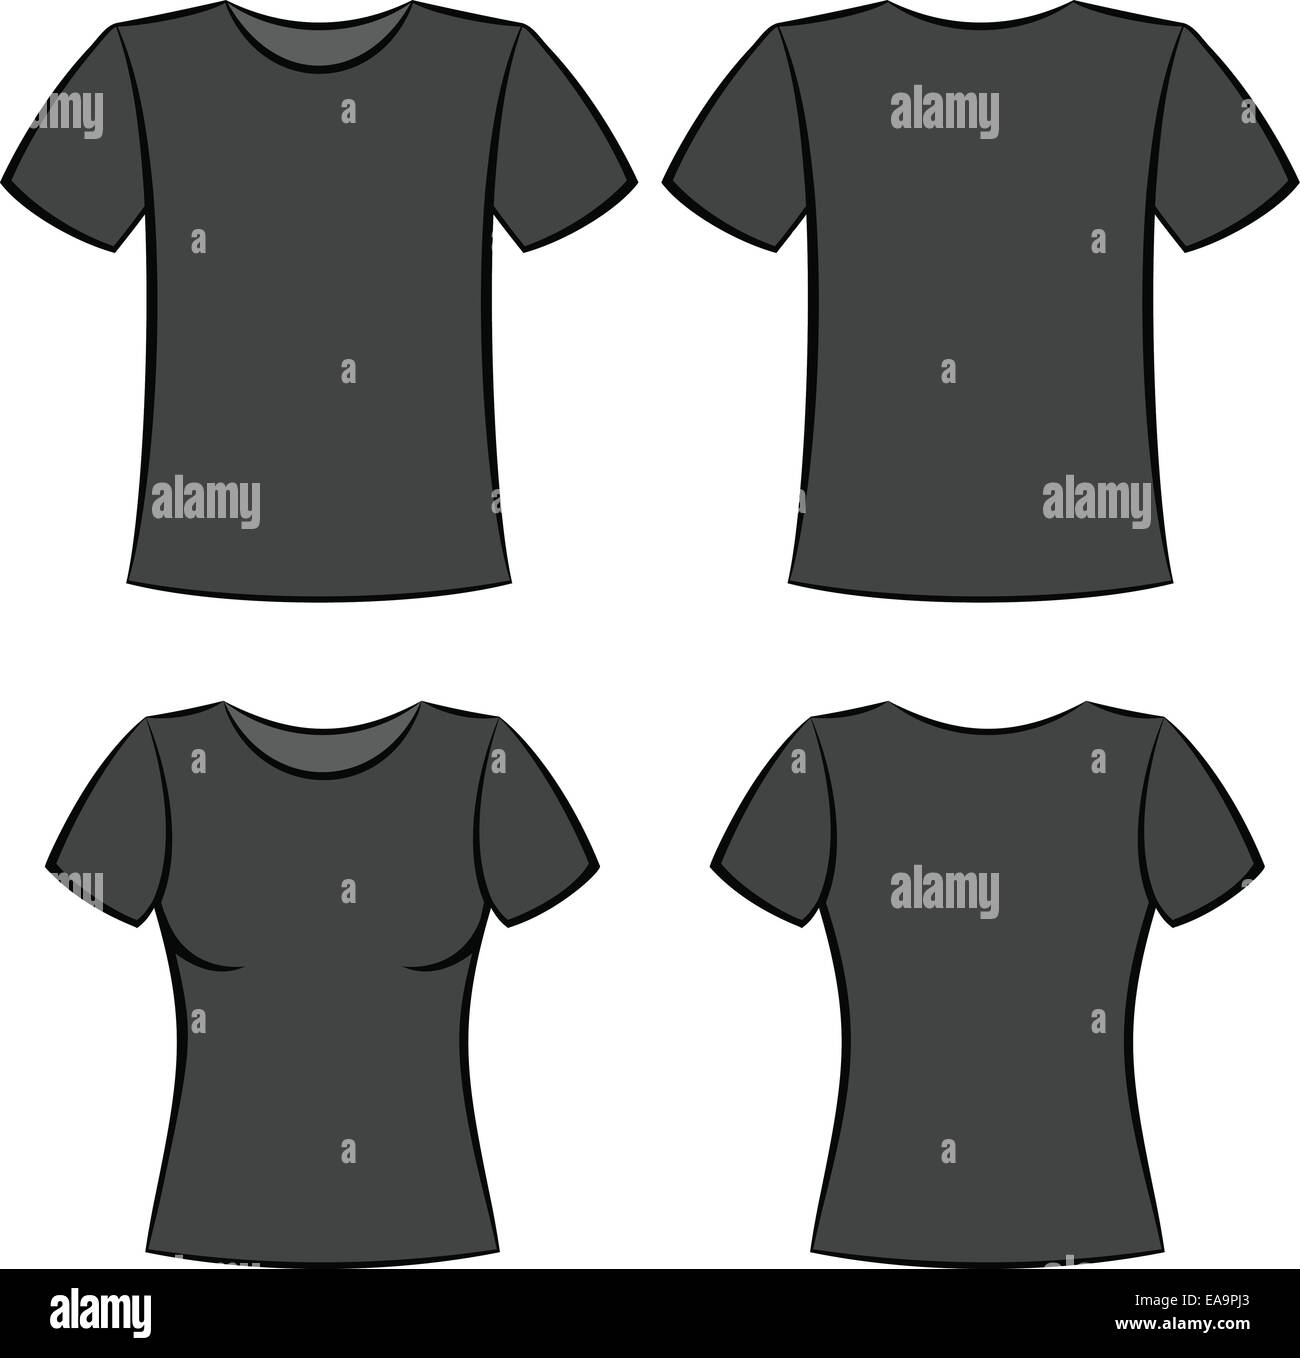 Black t shirt template -  Black T Shirt Clothes Blank Template Vector Illustration Download